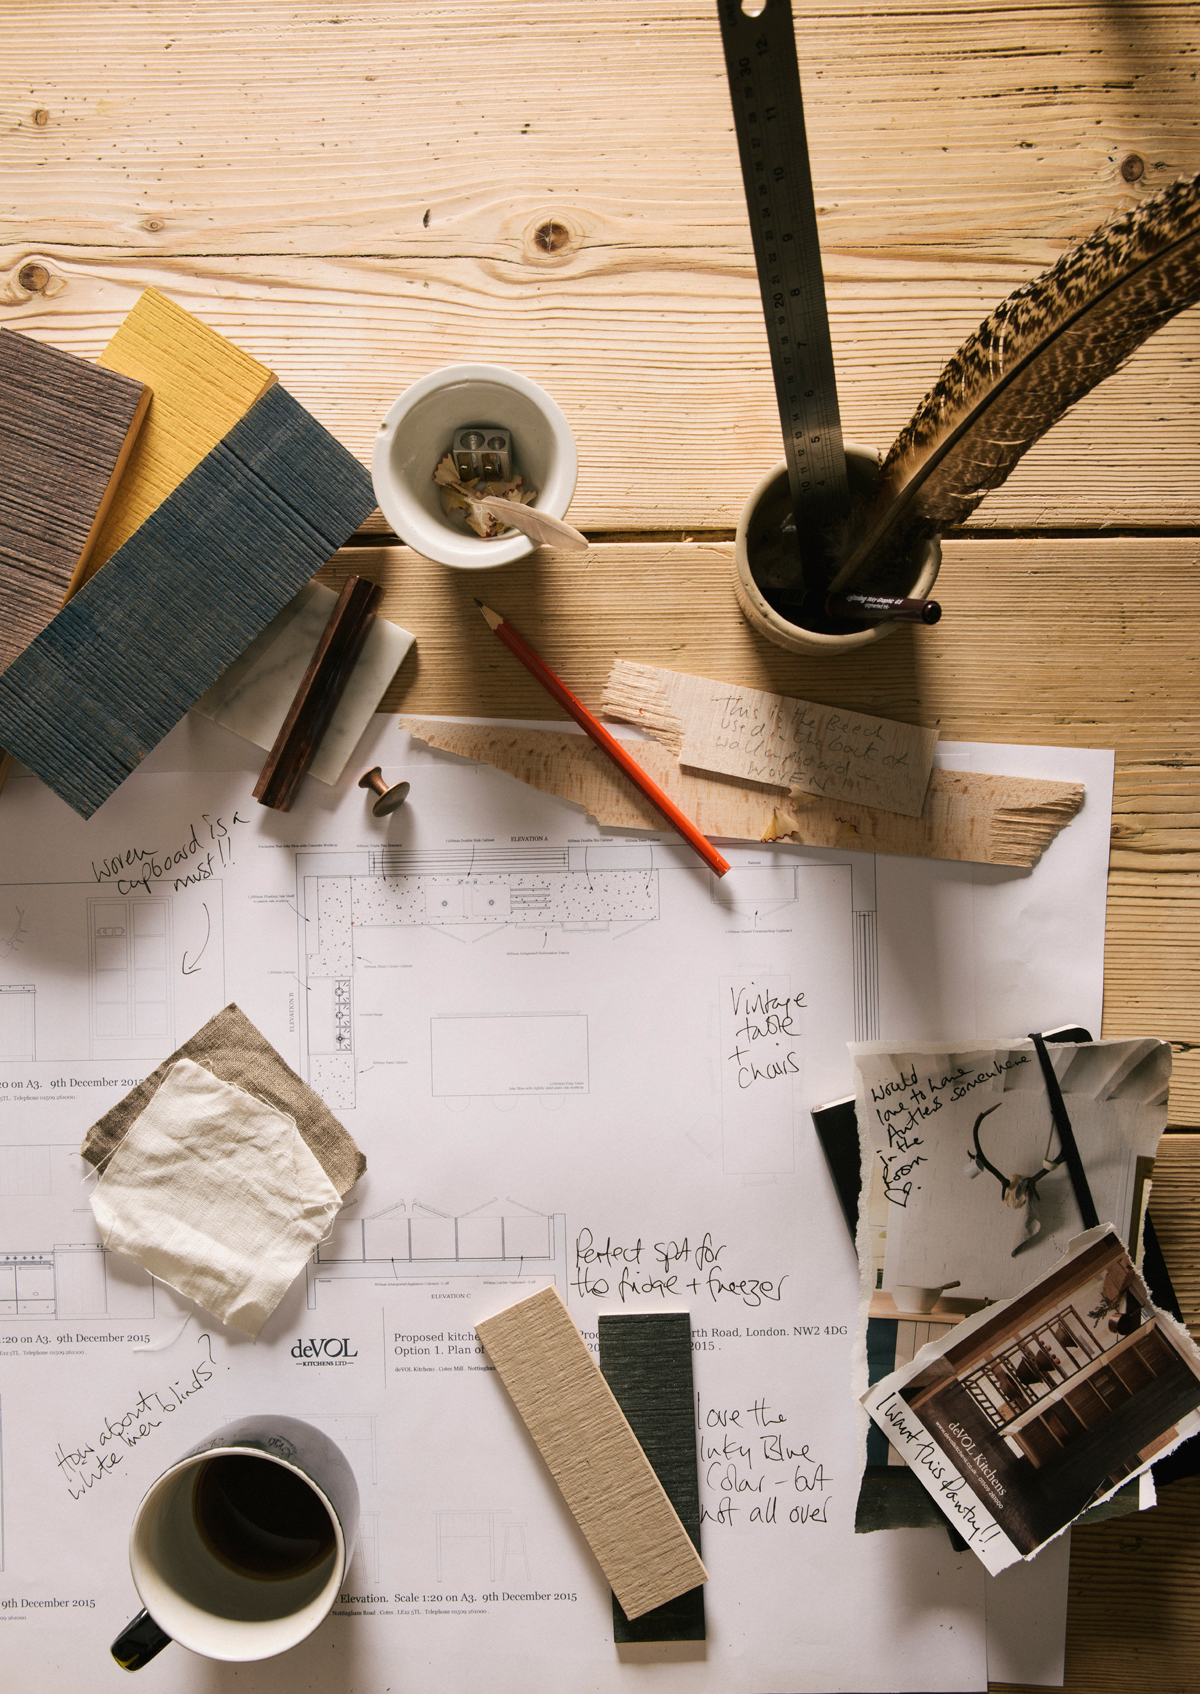 The design process can be done in whatever way best suits you